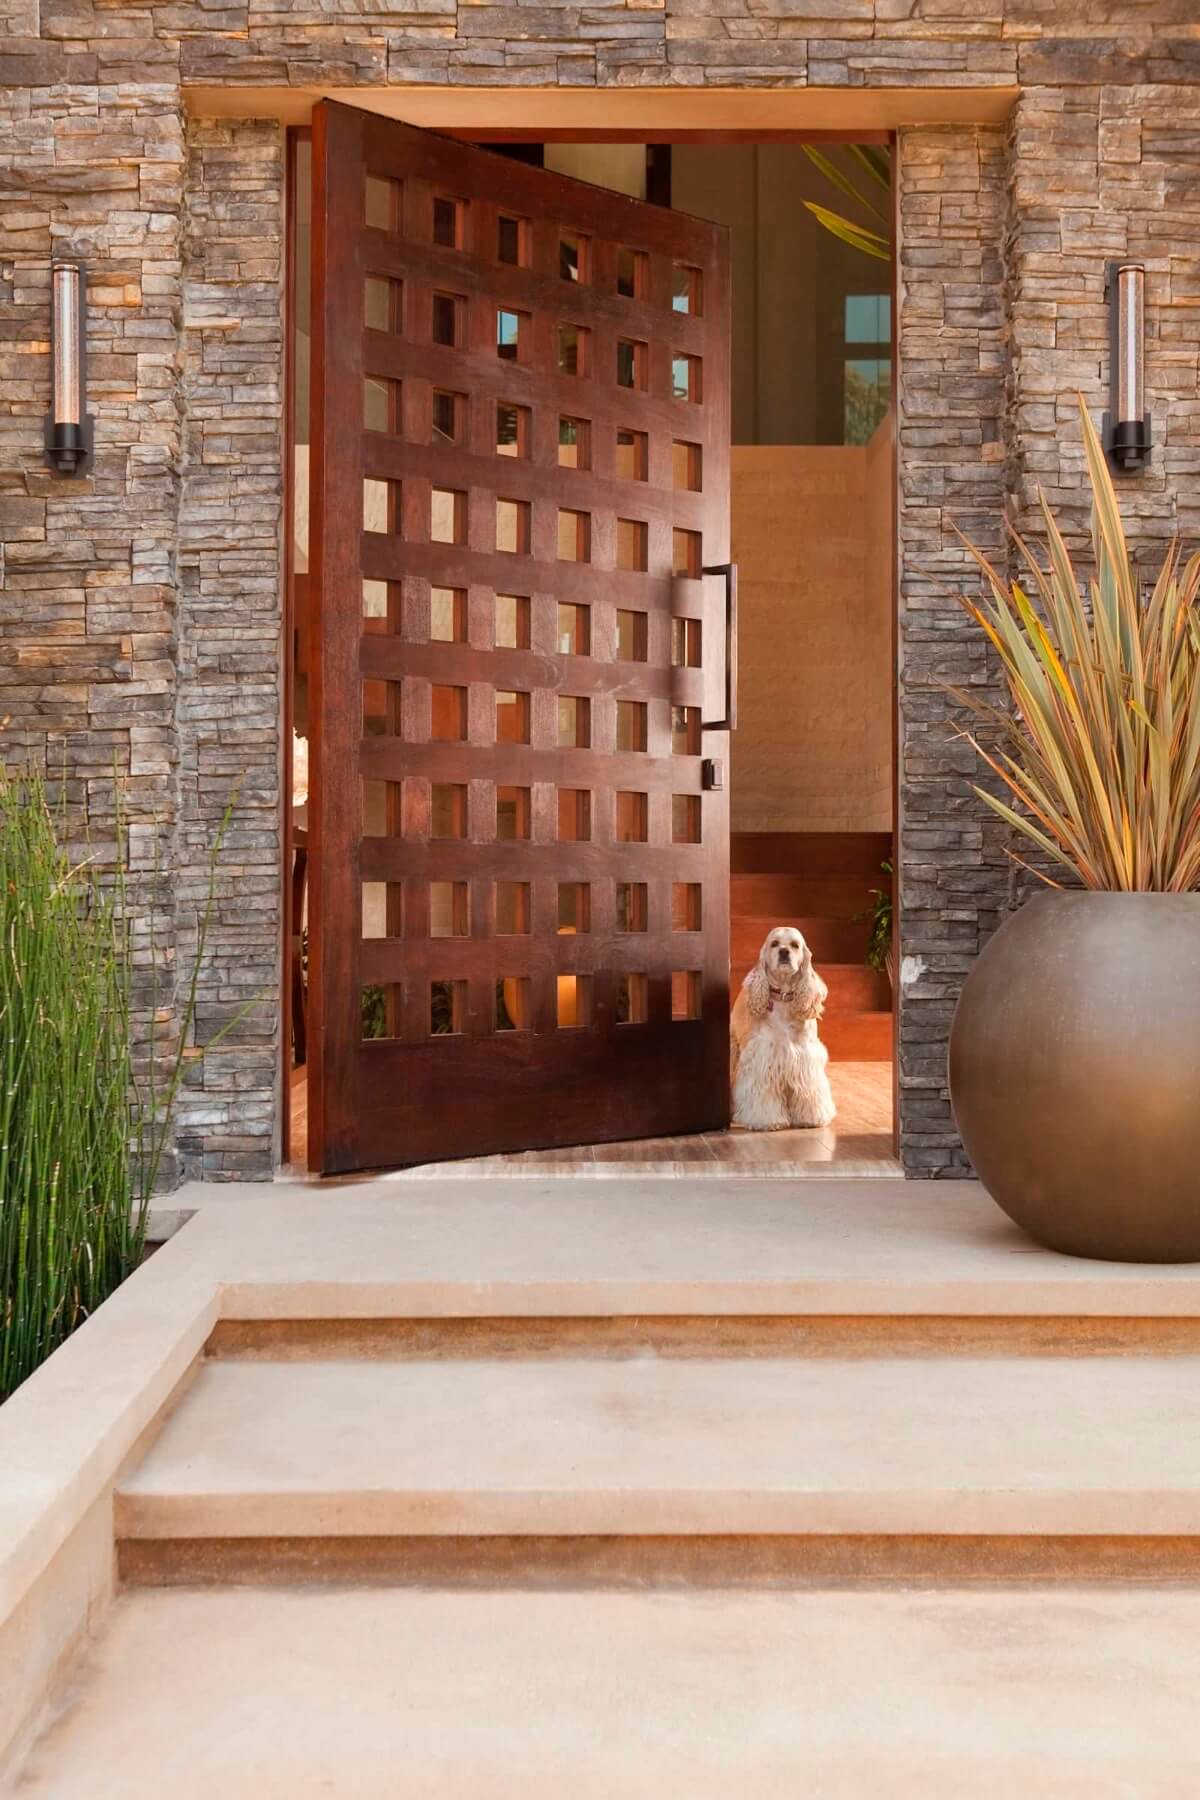 WOODEN PATTERNED DOOR ENTRANCE DESIGN IDEAS